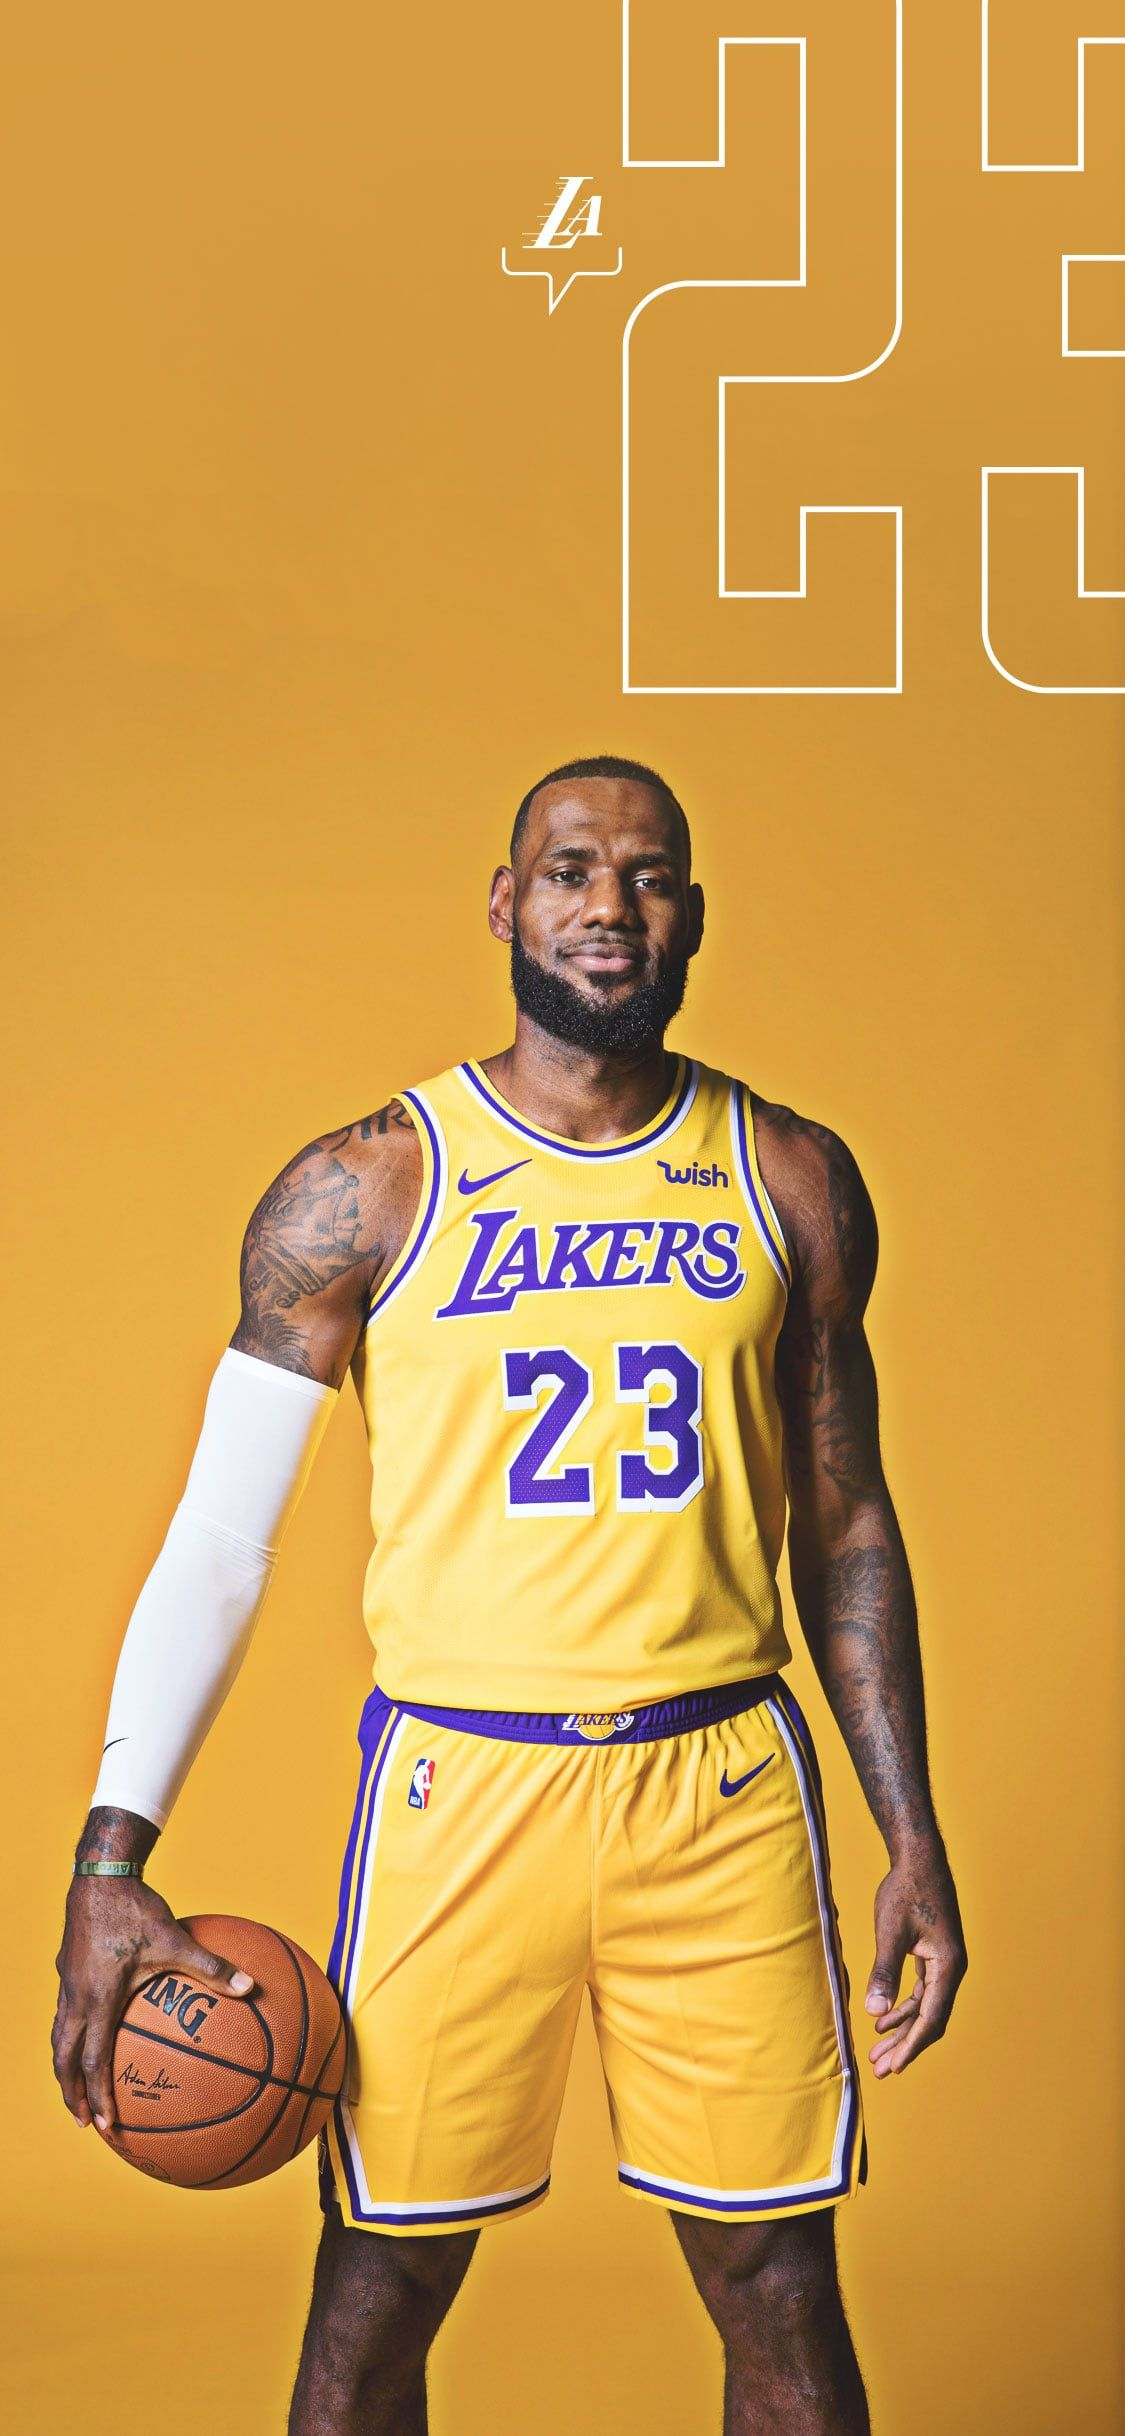 LeBron James Lakers Wallpapers - Top